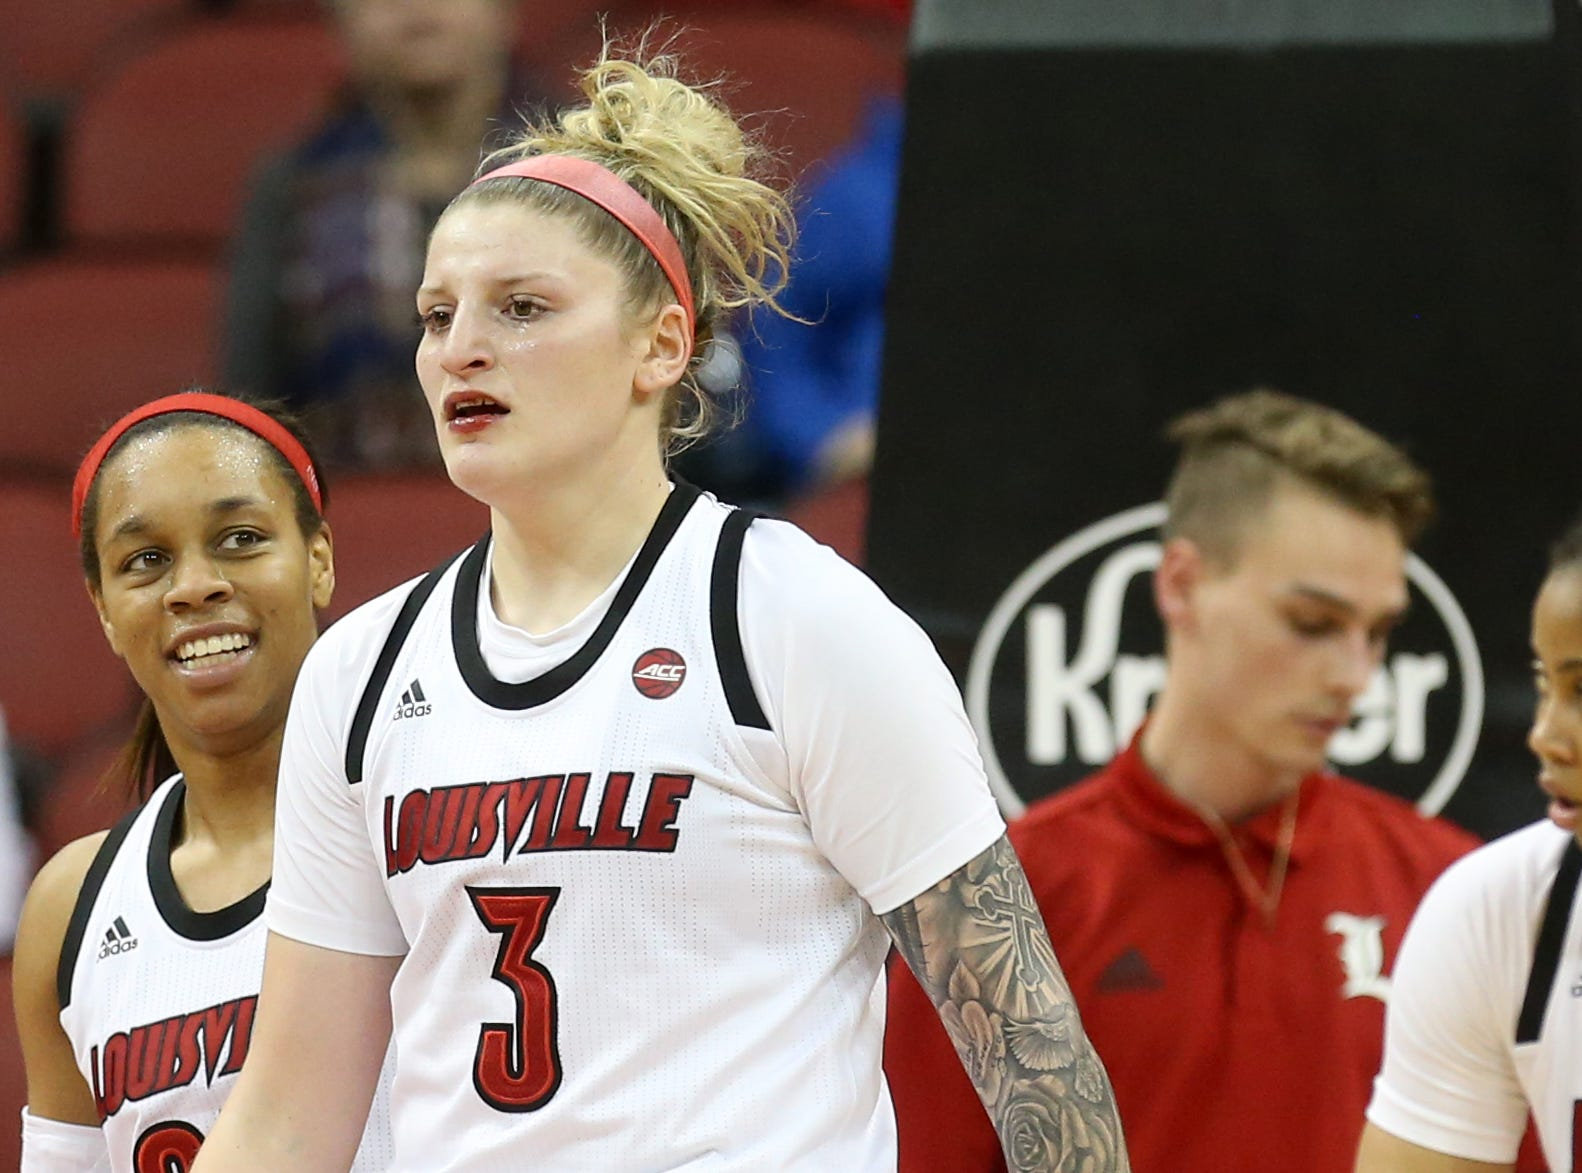 Louisville's Sam Fuerhring heads back to the bench with a bloody lip.